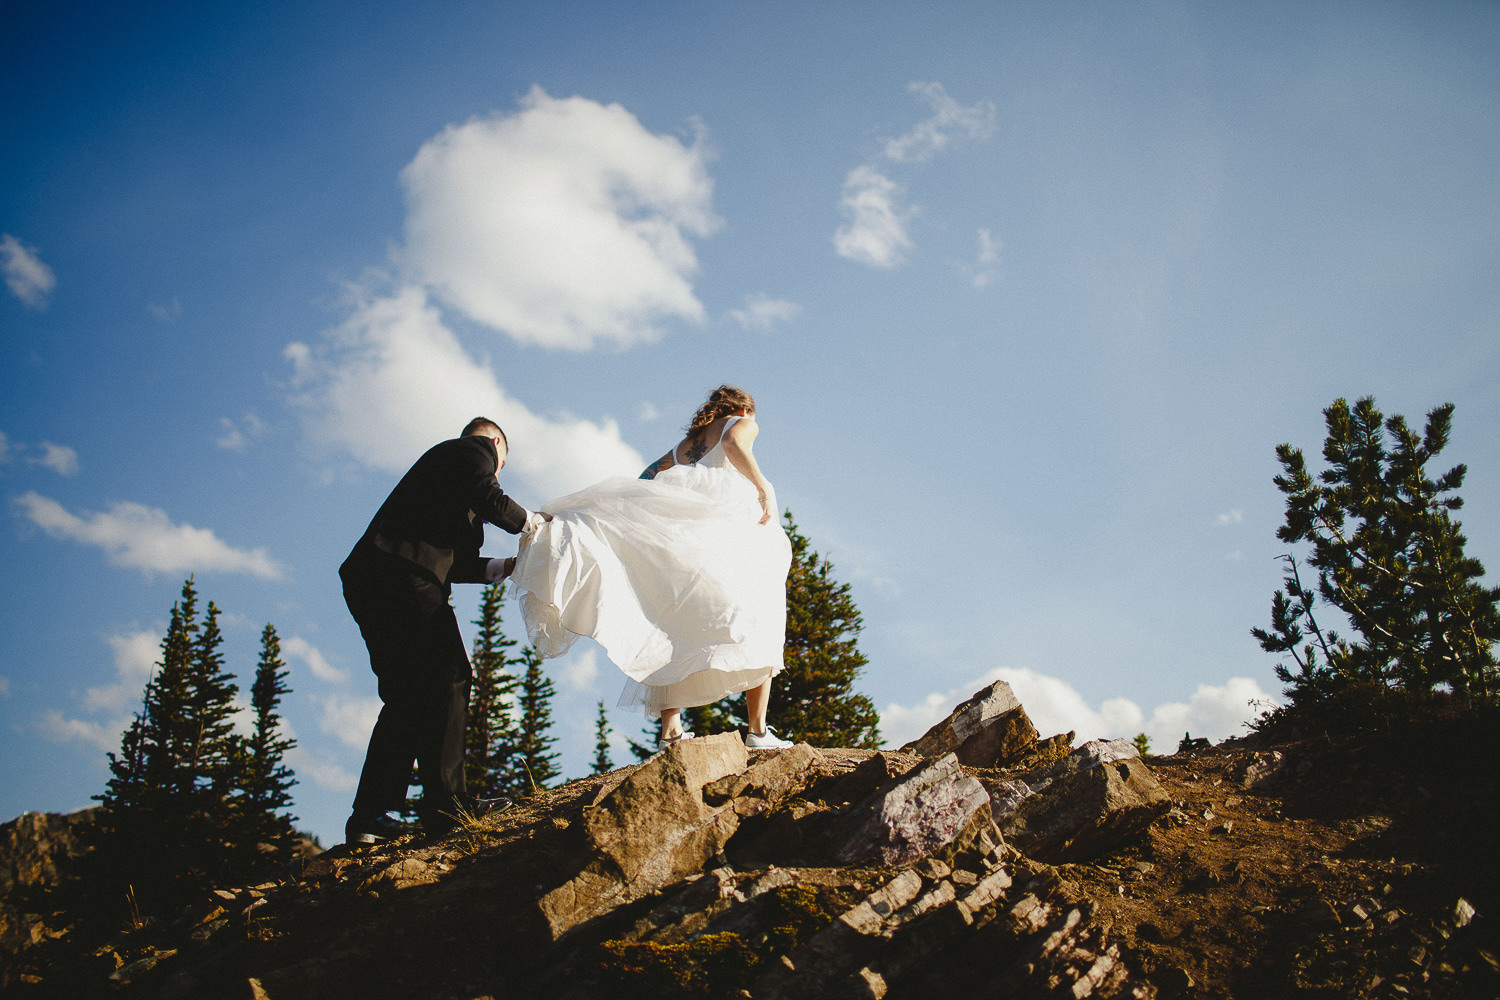 2017,68photography,6:8 Photography,6:8 Wedding Photography,Brad,Destination,Fernie Photographer,Fernie Wedding Photographer,Golden,Golden Wedding Photographers,Keltie,Keltie and Brad,Kicking Horse,Kicking Horse Mountain Resort,Mountain,September,